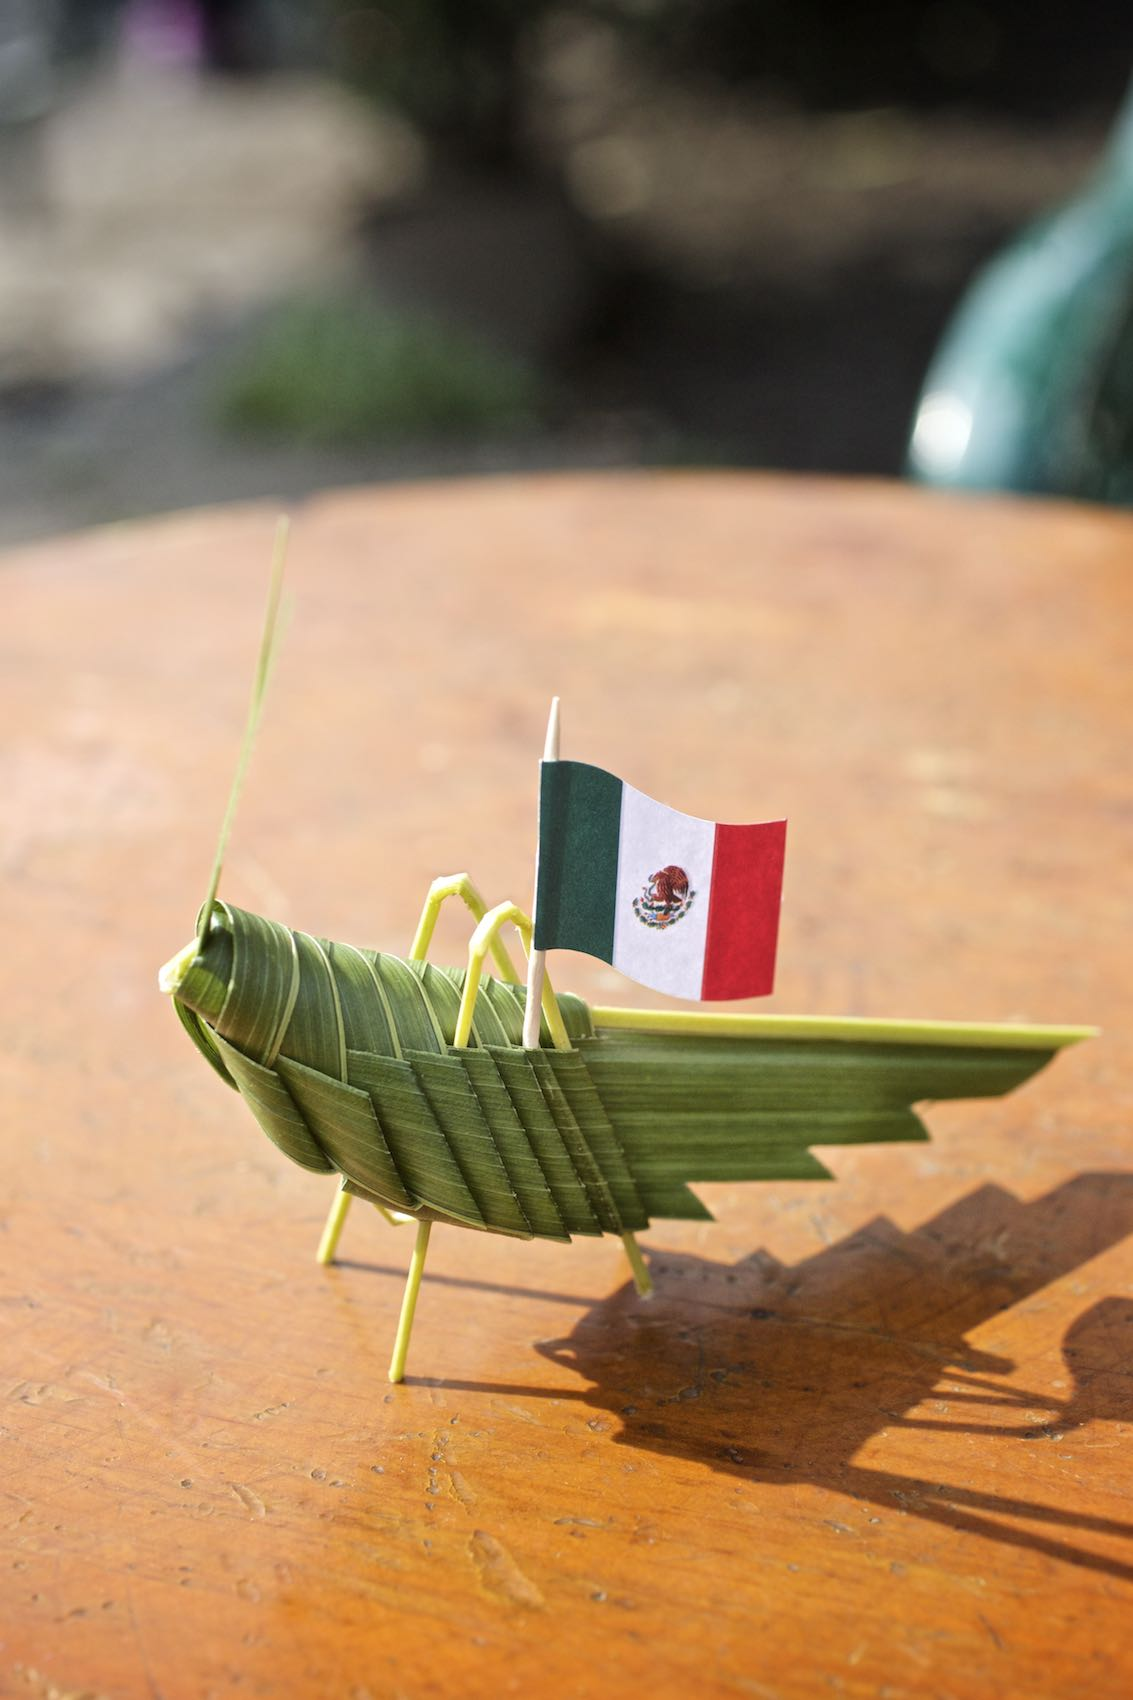 Grasshopper figurine made from leaves, bearing the Mexican Flag.